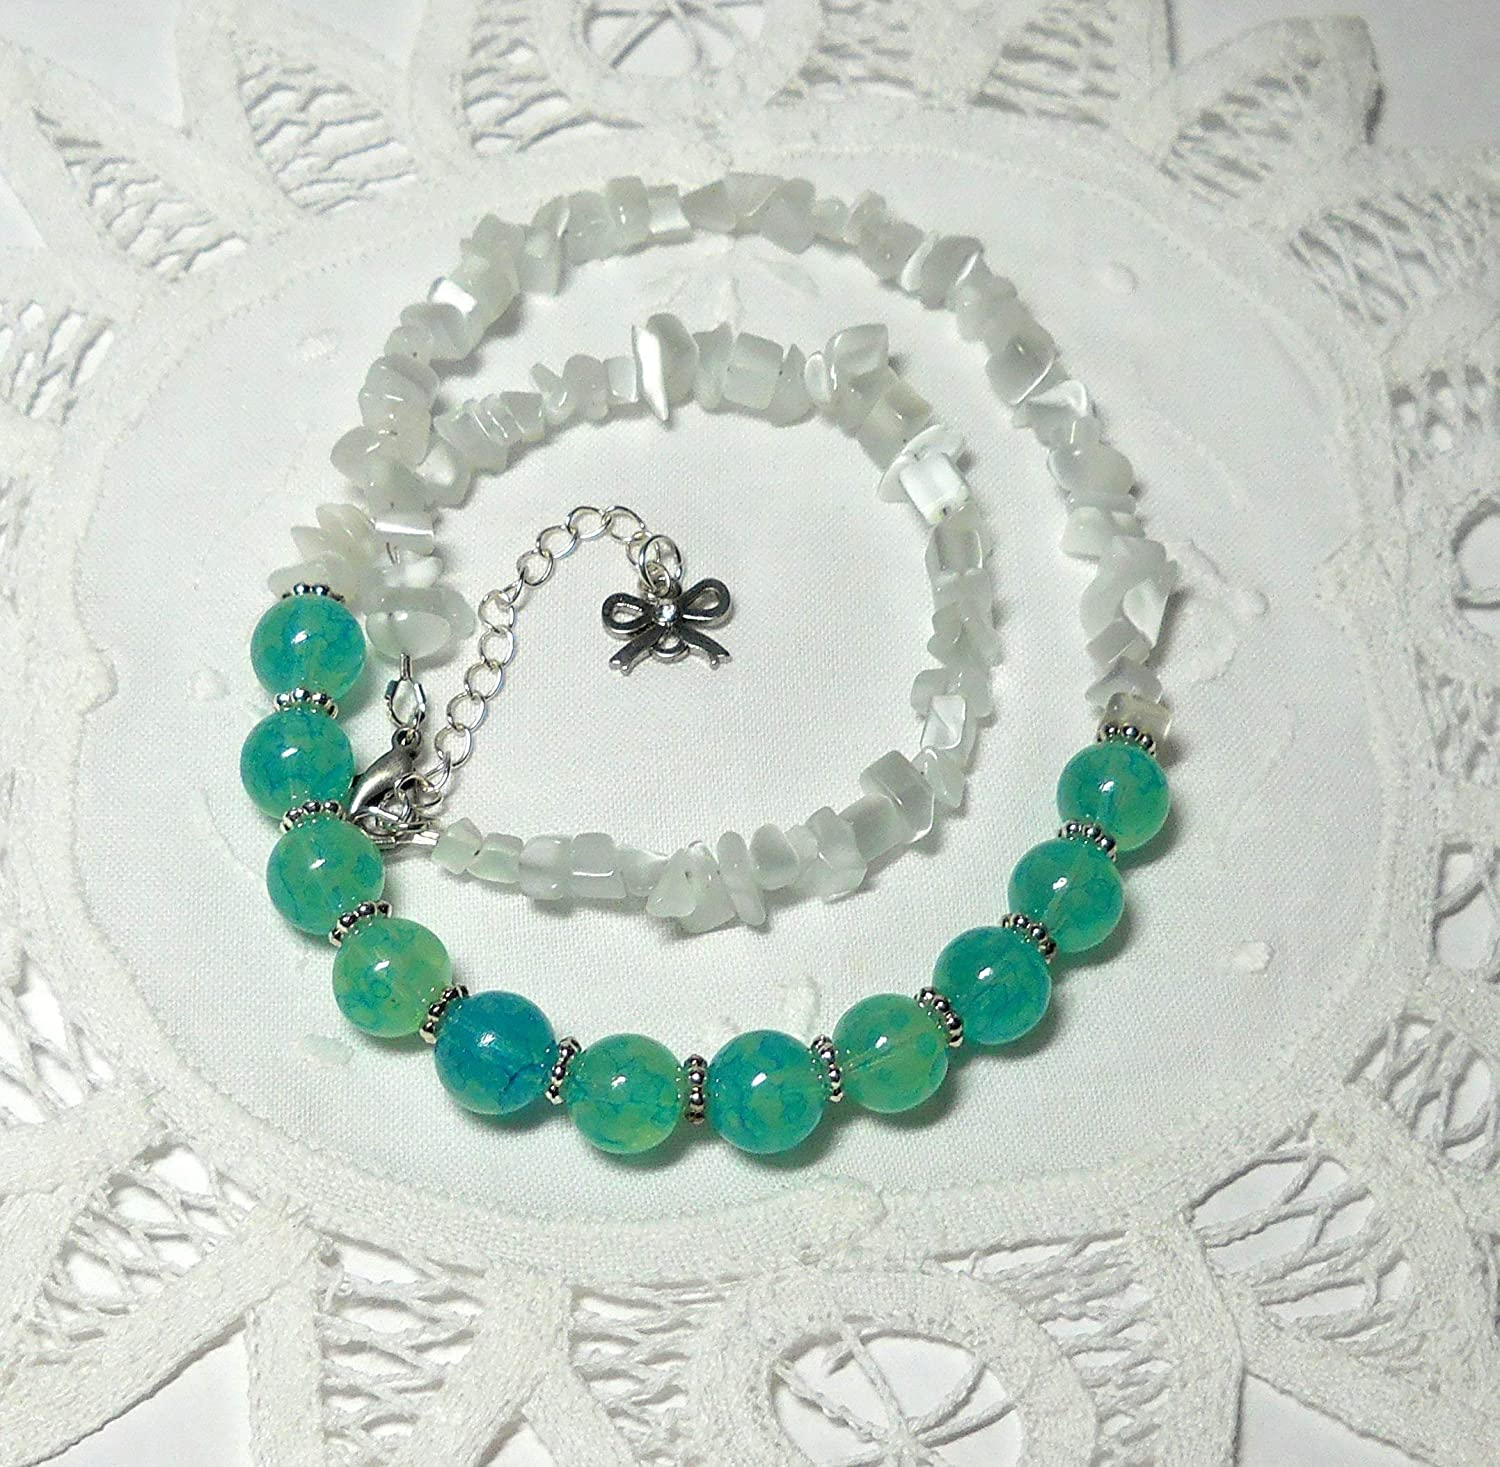 Handmade beaded necklace for her